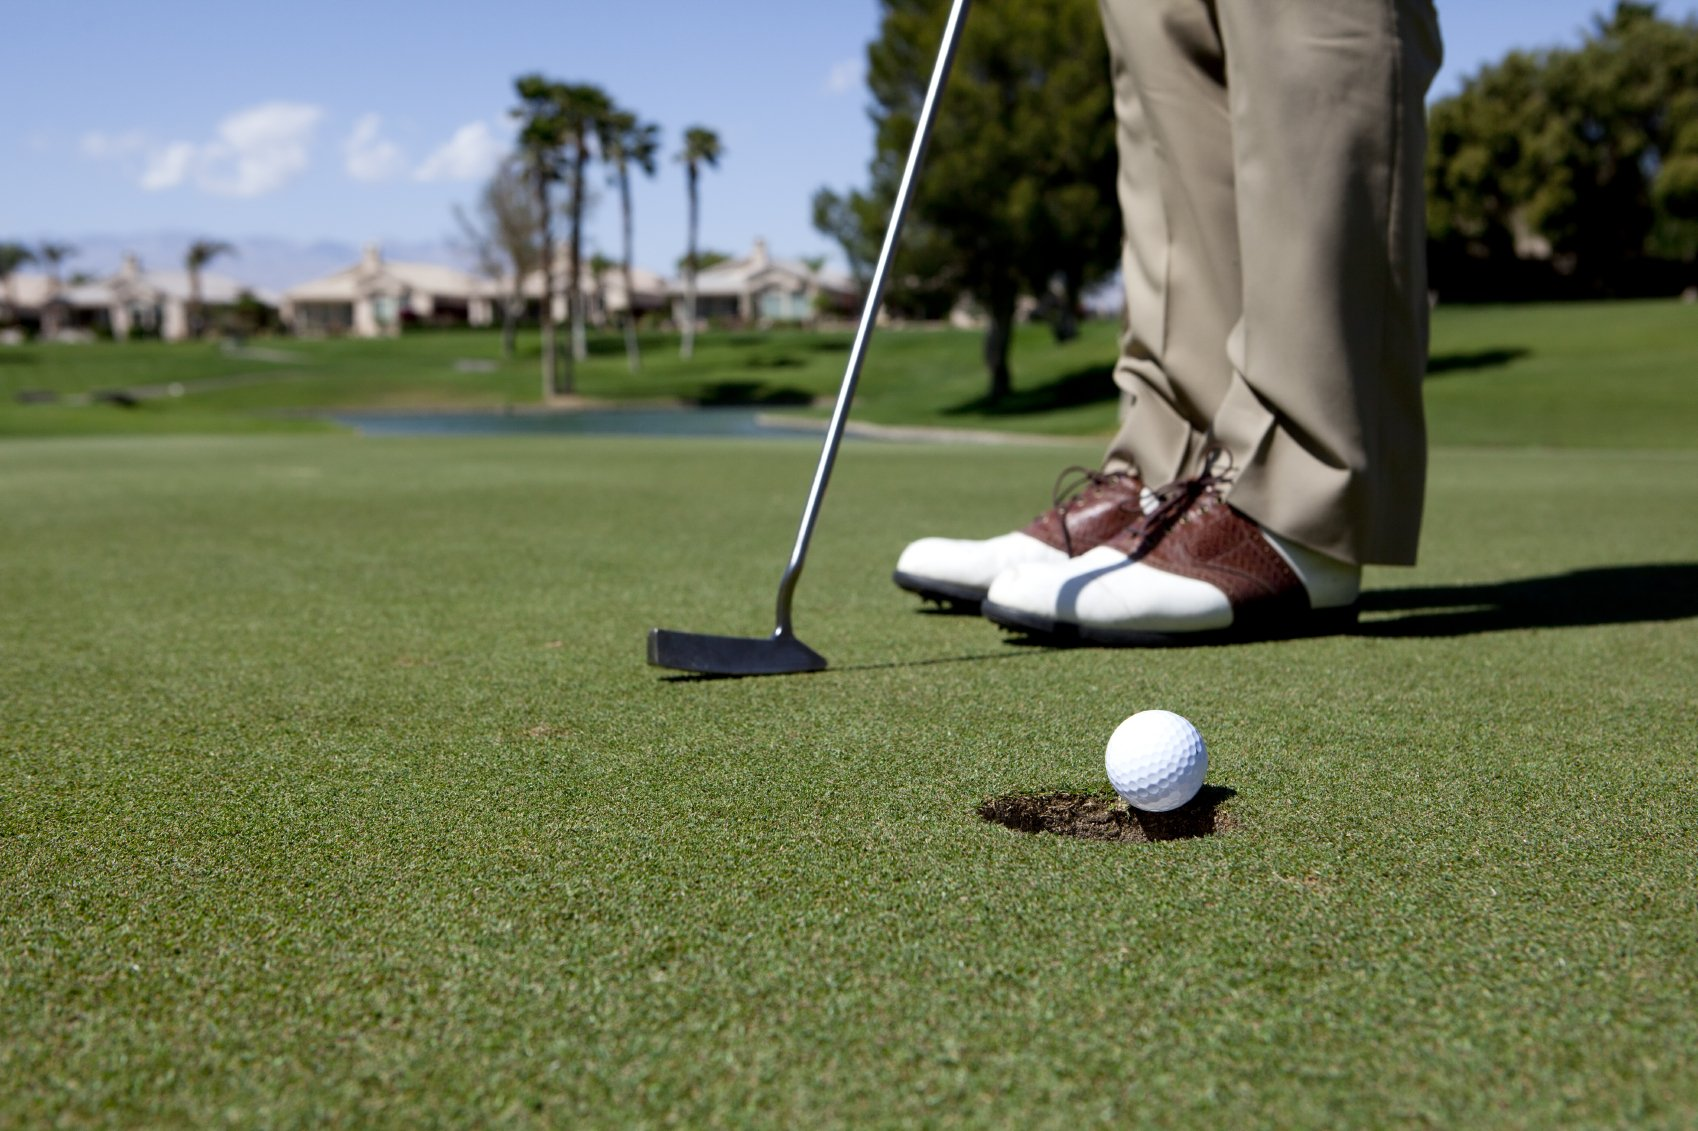 birdie golf hybrid golf merger The birdie golf-hybrid golf merger  birdie golf, inc, has been in merger talks with hybrid golf company for the past six months after several rounds of negotiations, the offer under discussion is a cash offer of $250 million for hybrid golf.